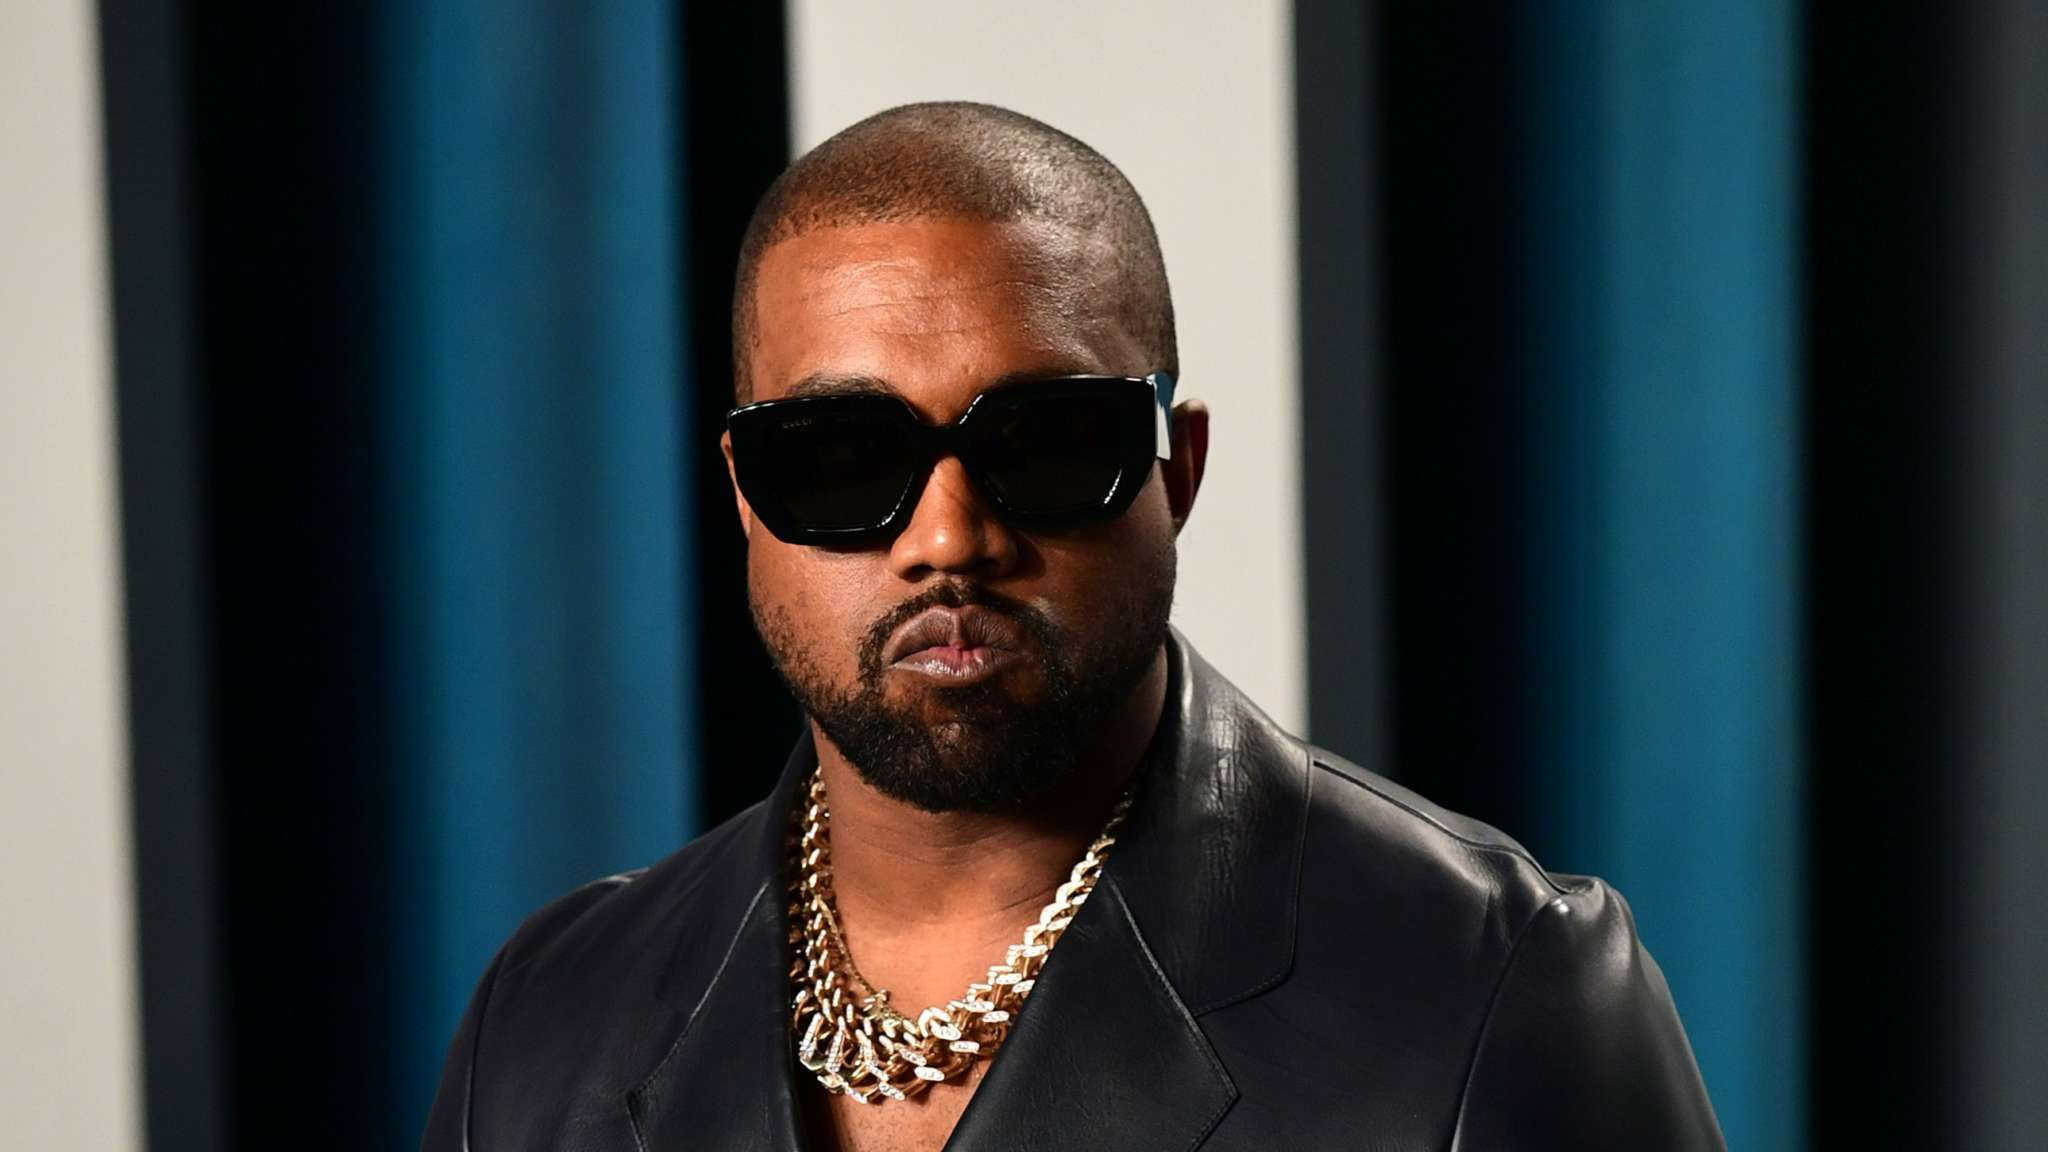 Kanye West Reveals Some Surprising Early Poll Numbers – He Still Plans To Run For President